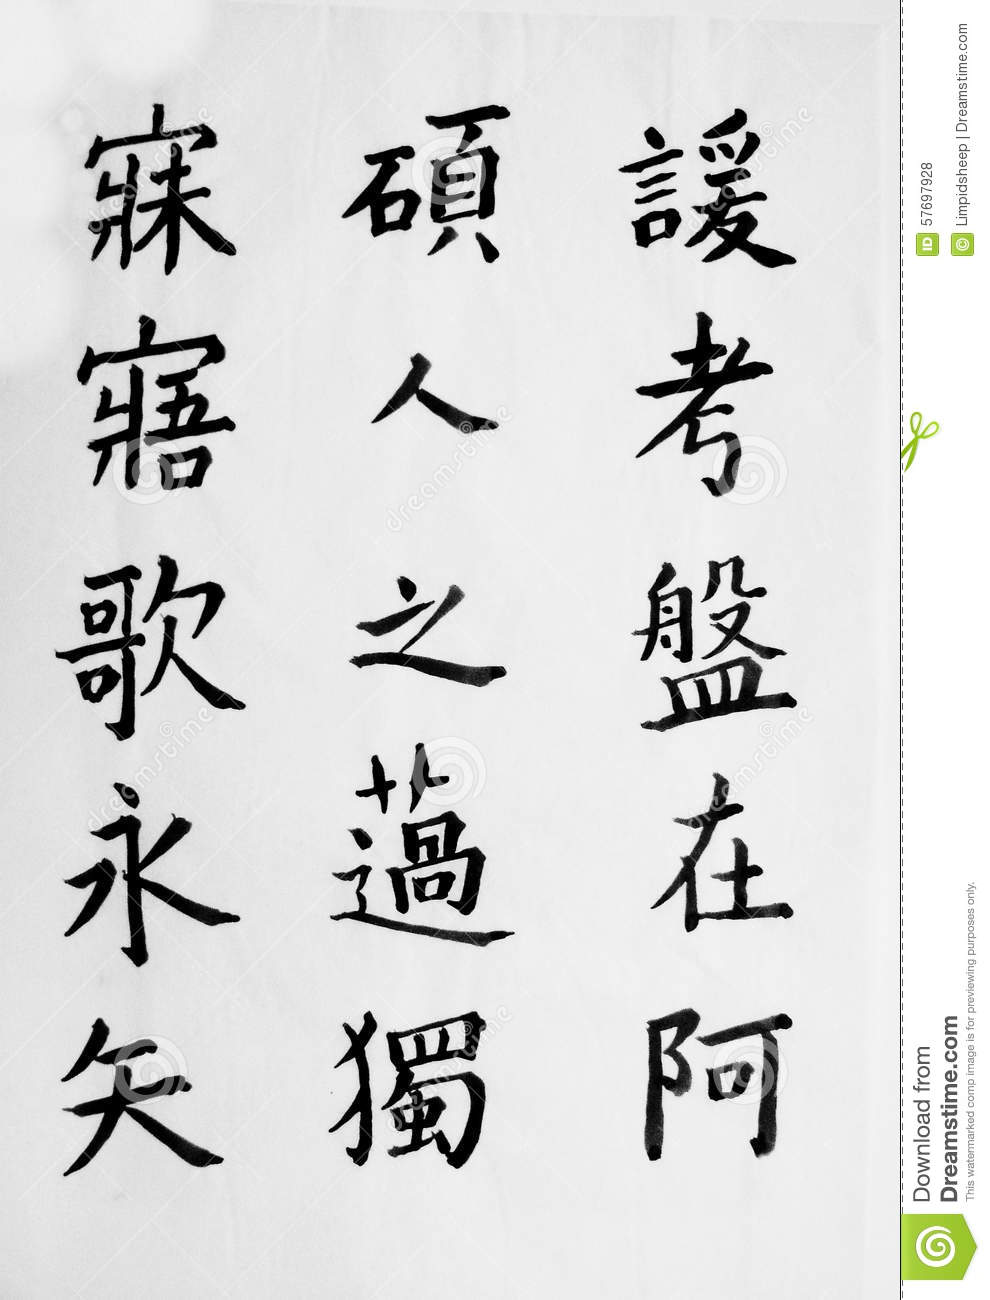 chinese writing wallpaper Chinese symbols sort by order items per page pages 1 2 3 4 5 next last peace chinese symbol wall quotes™ wall art decal starting at: $595.